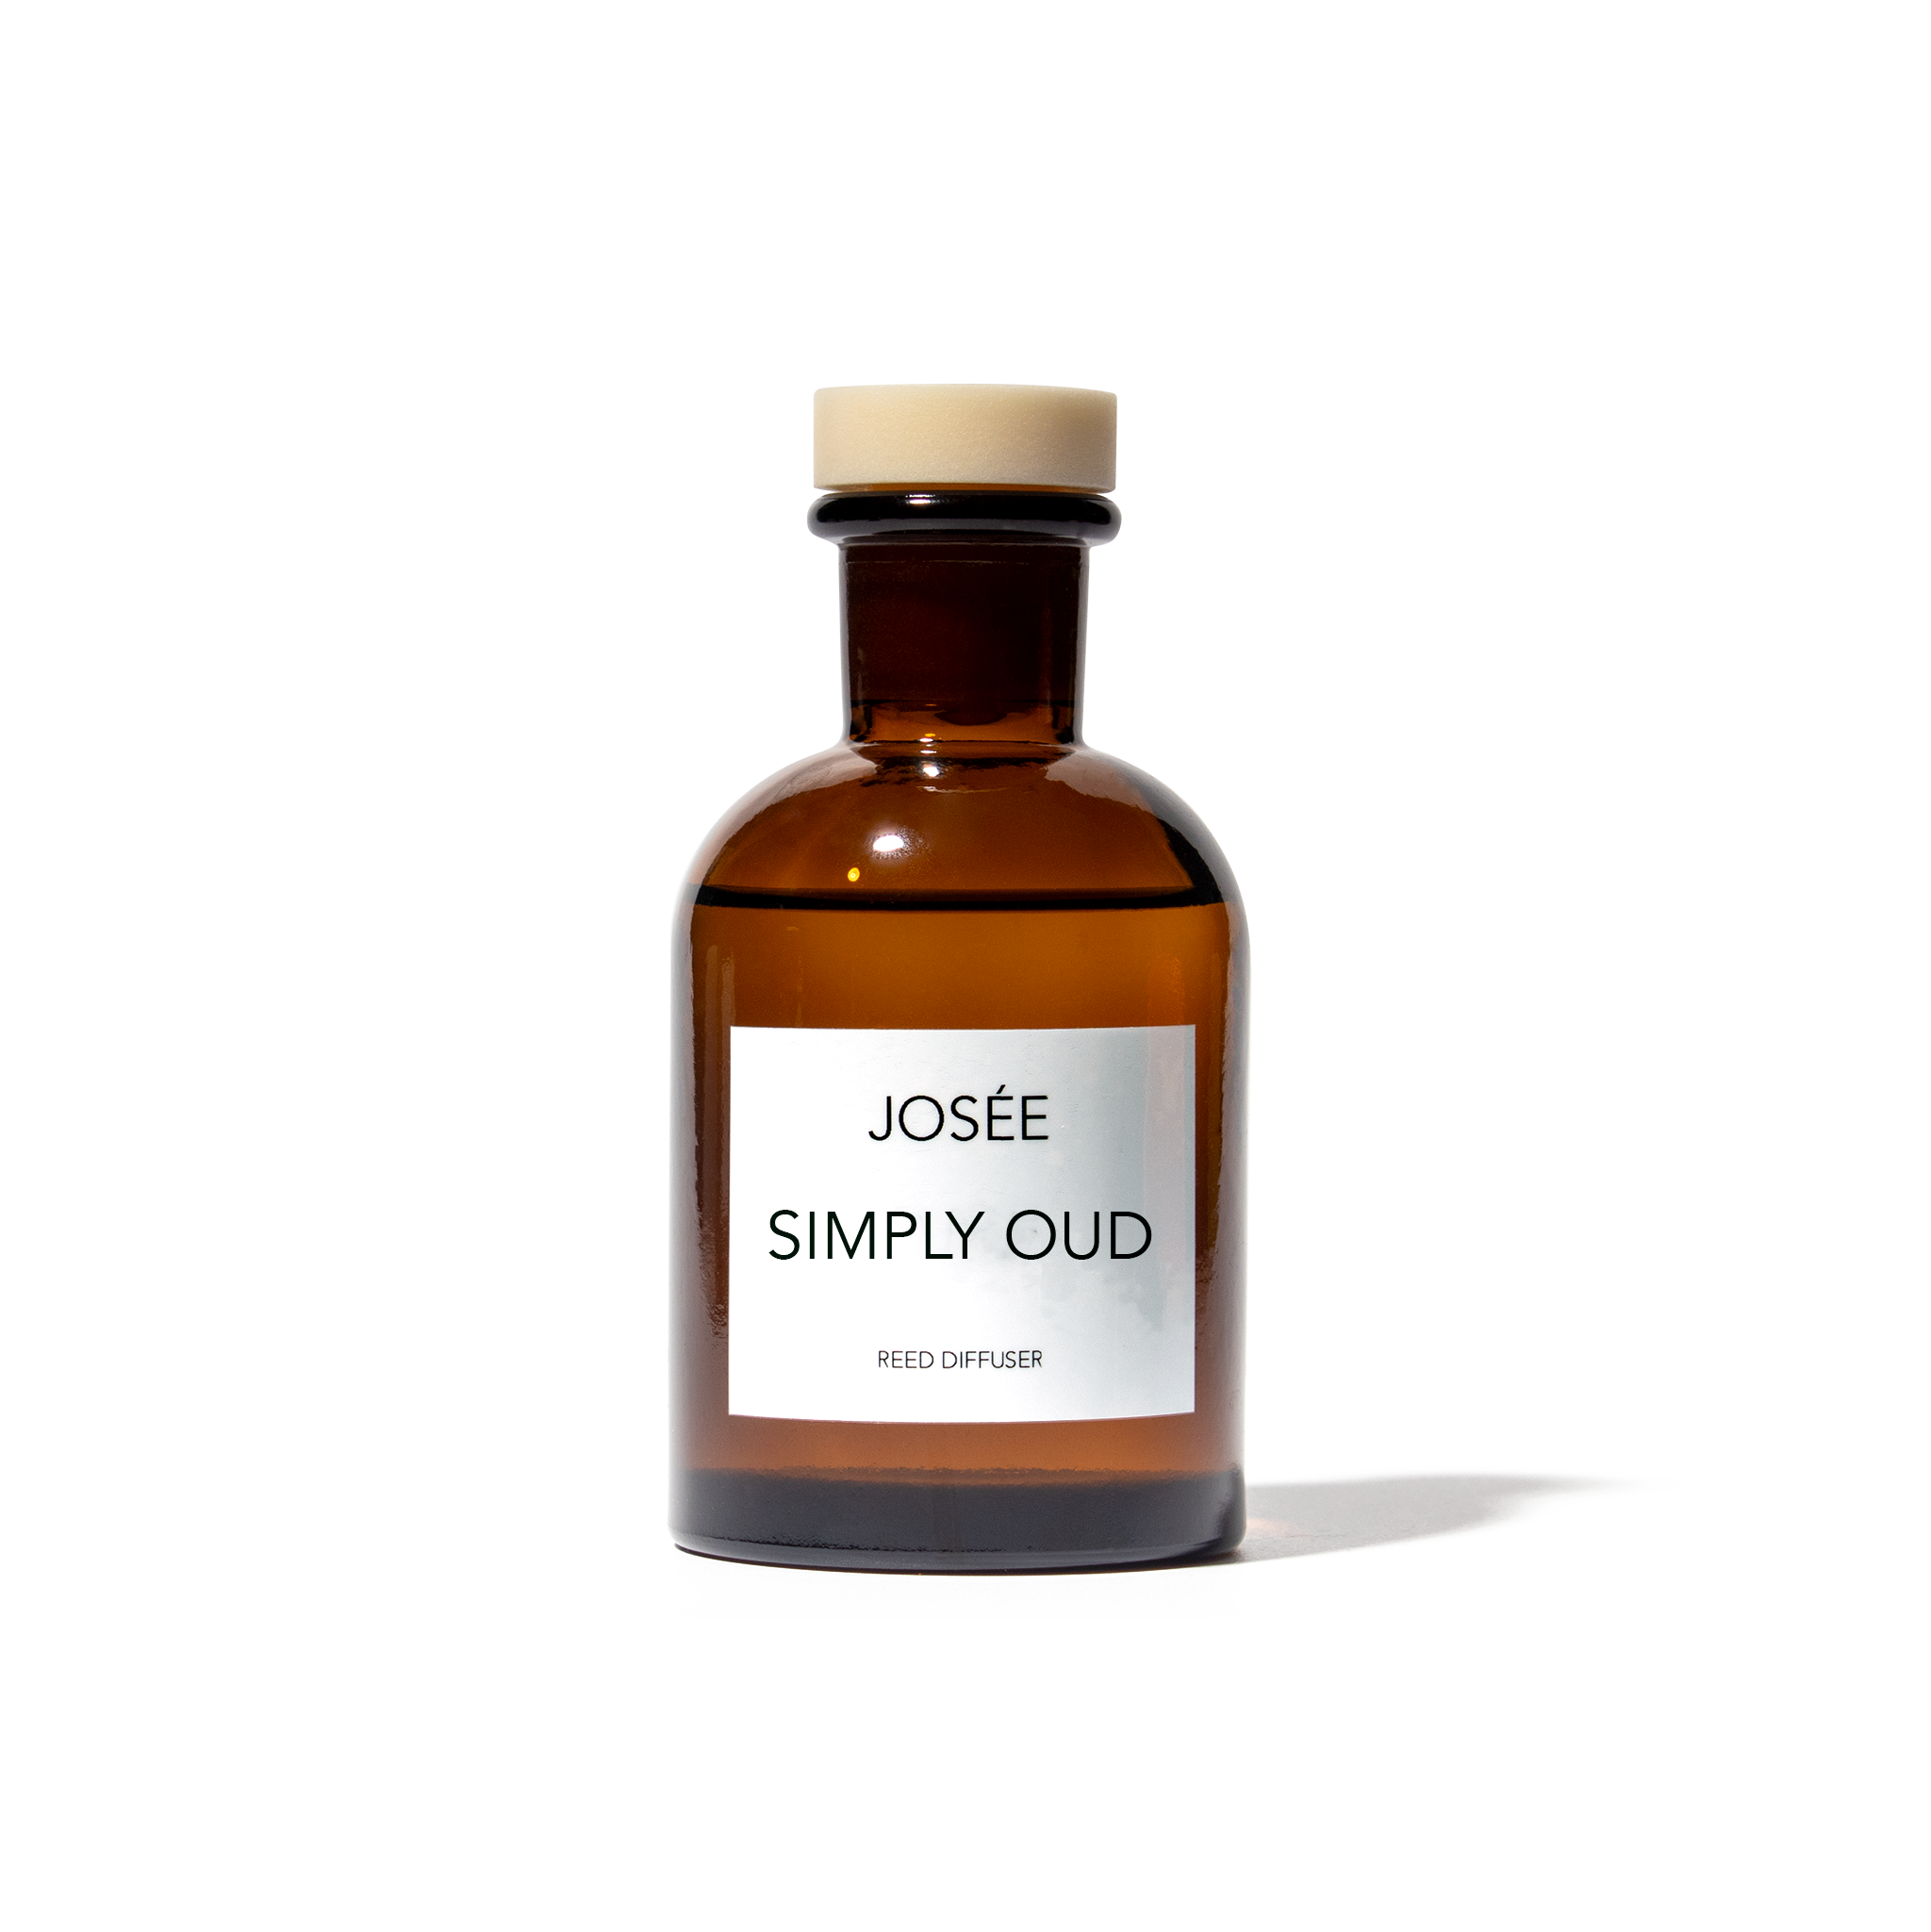 Simply Oud Reed Diffuser